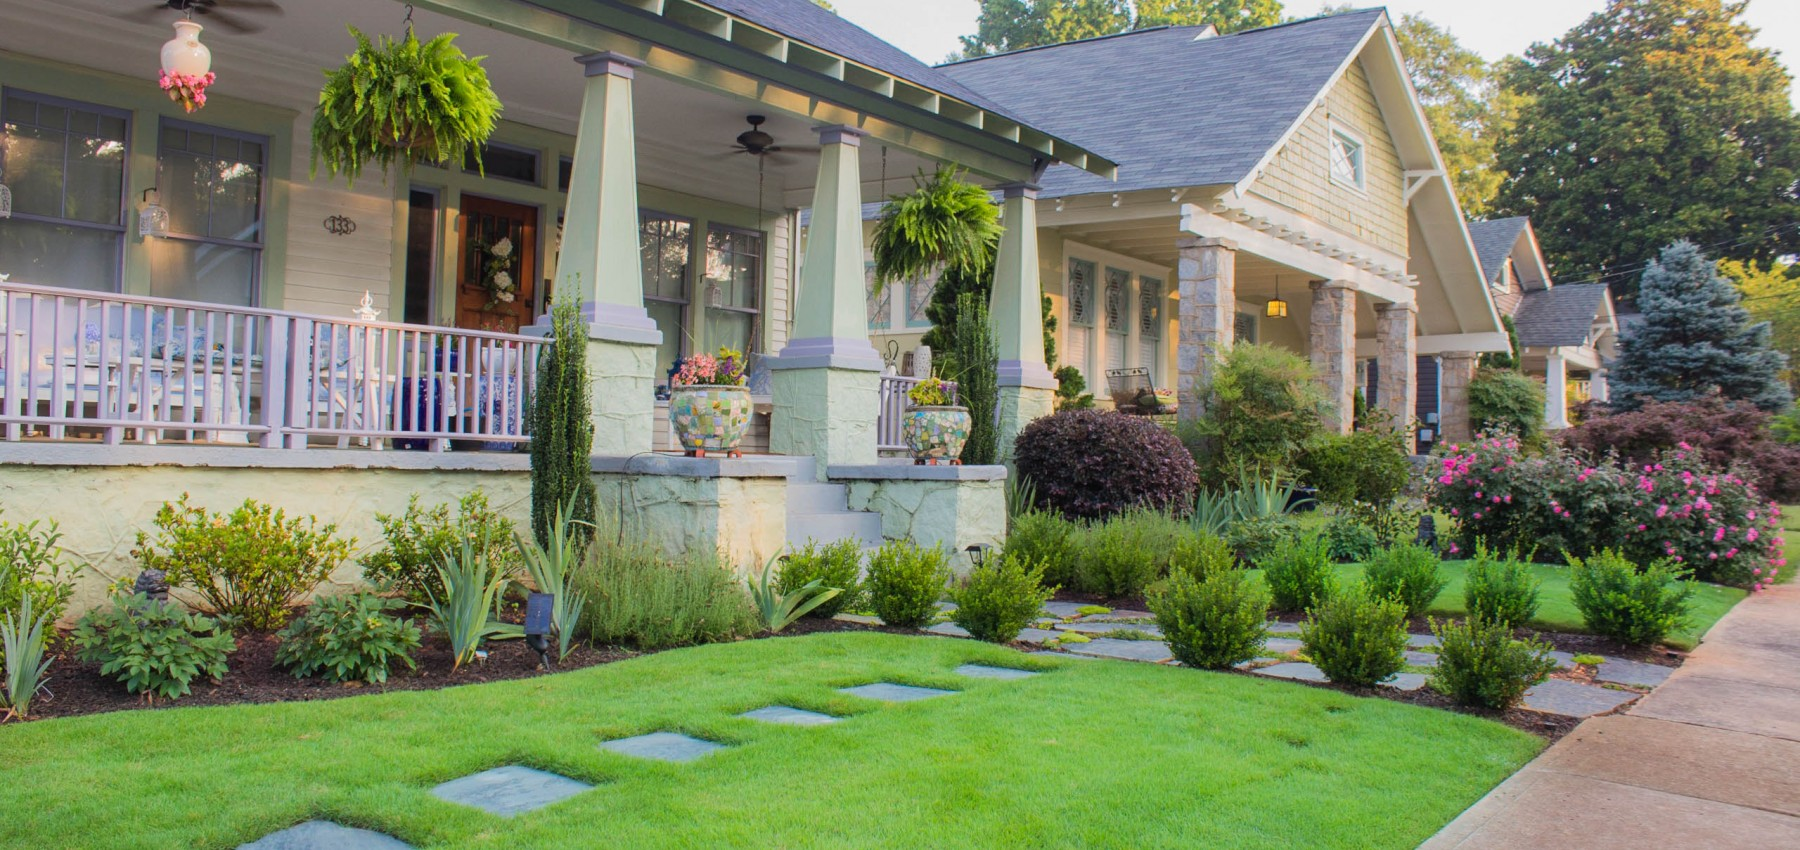 How much does landscape design cost? on Cost To Landscape Small Backyard id=64786